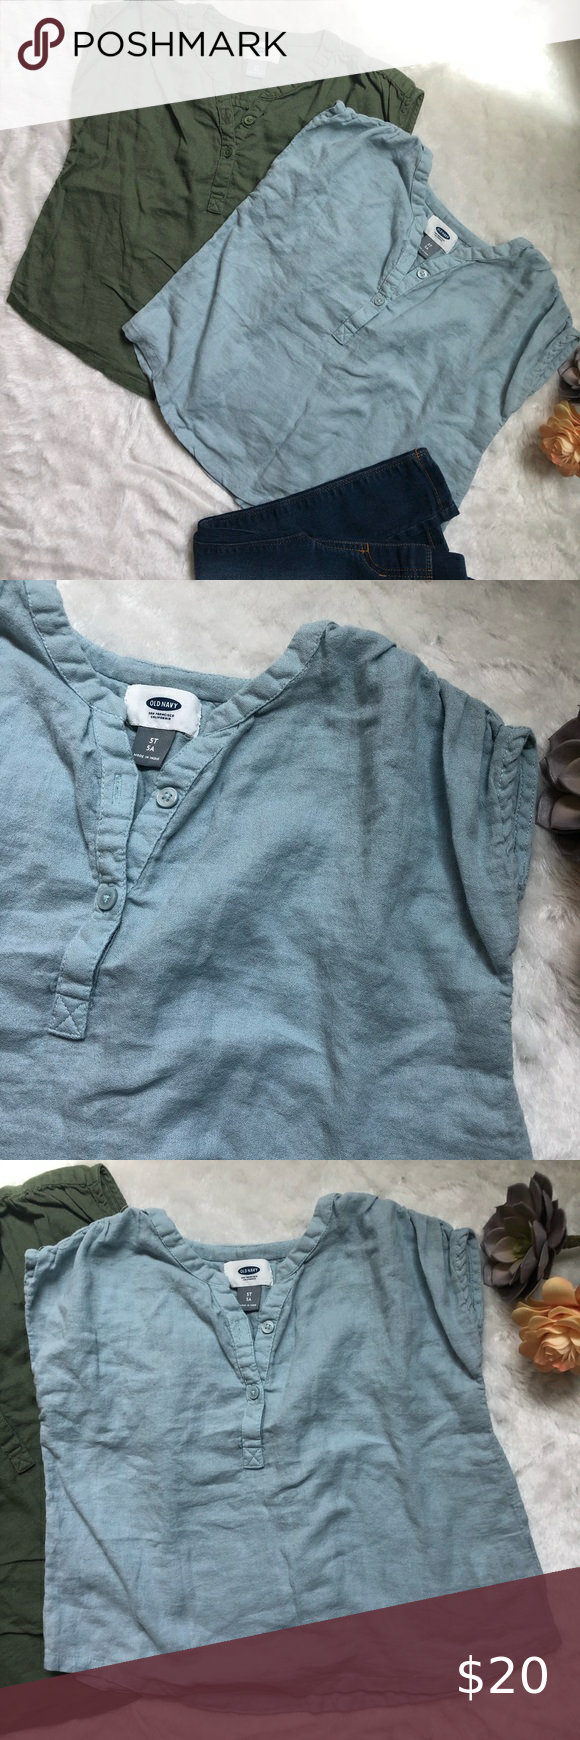 Old Navy Blouses Old Navy Blouses Size 5T Two Adorable Little Girls Tops Olive. Army Green. Light Blue Two Top Buttons Loose And Flowy So Cute With Skinny Jeans Old Navy Shirts &Amp; Tops Blouses